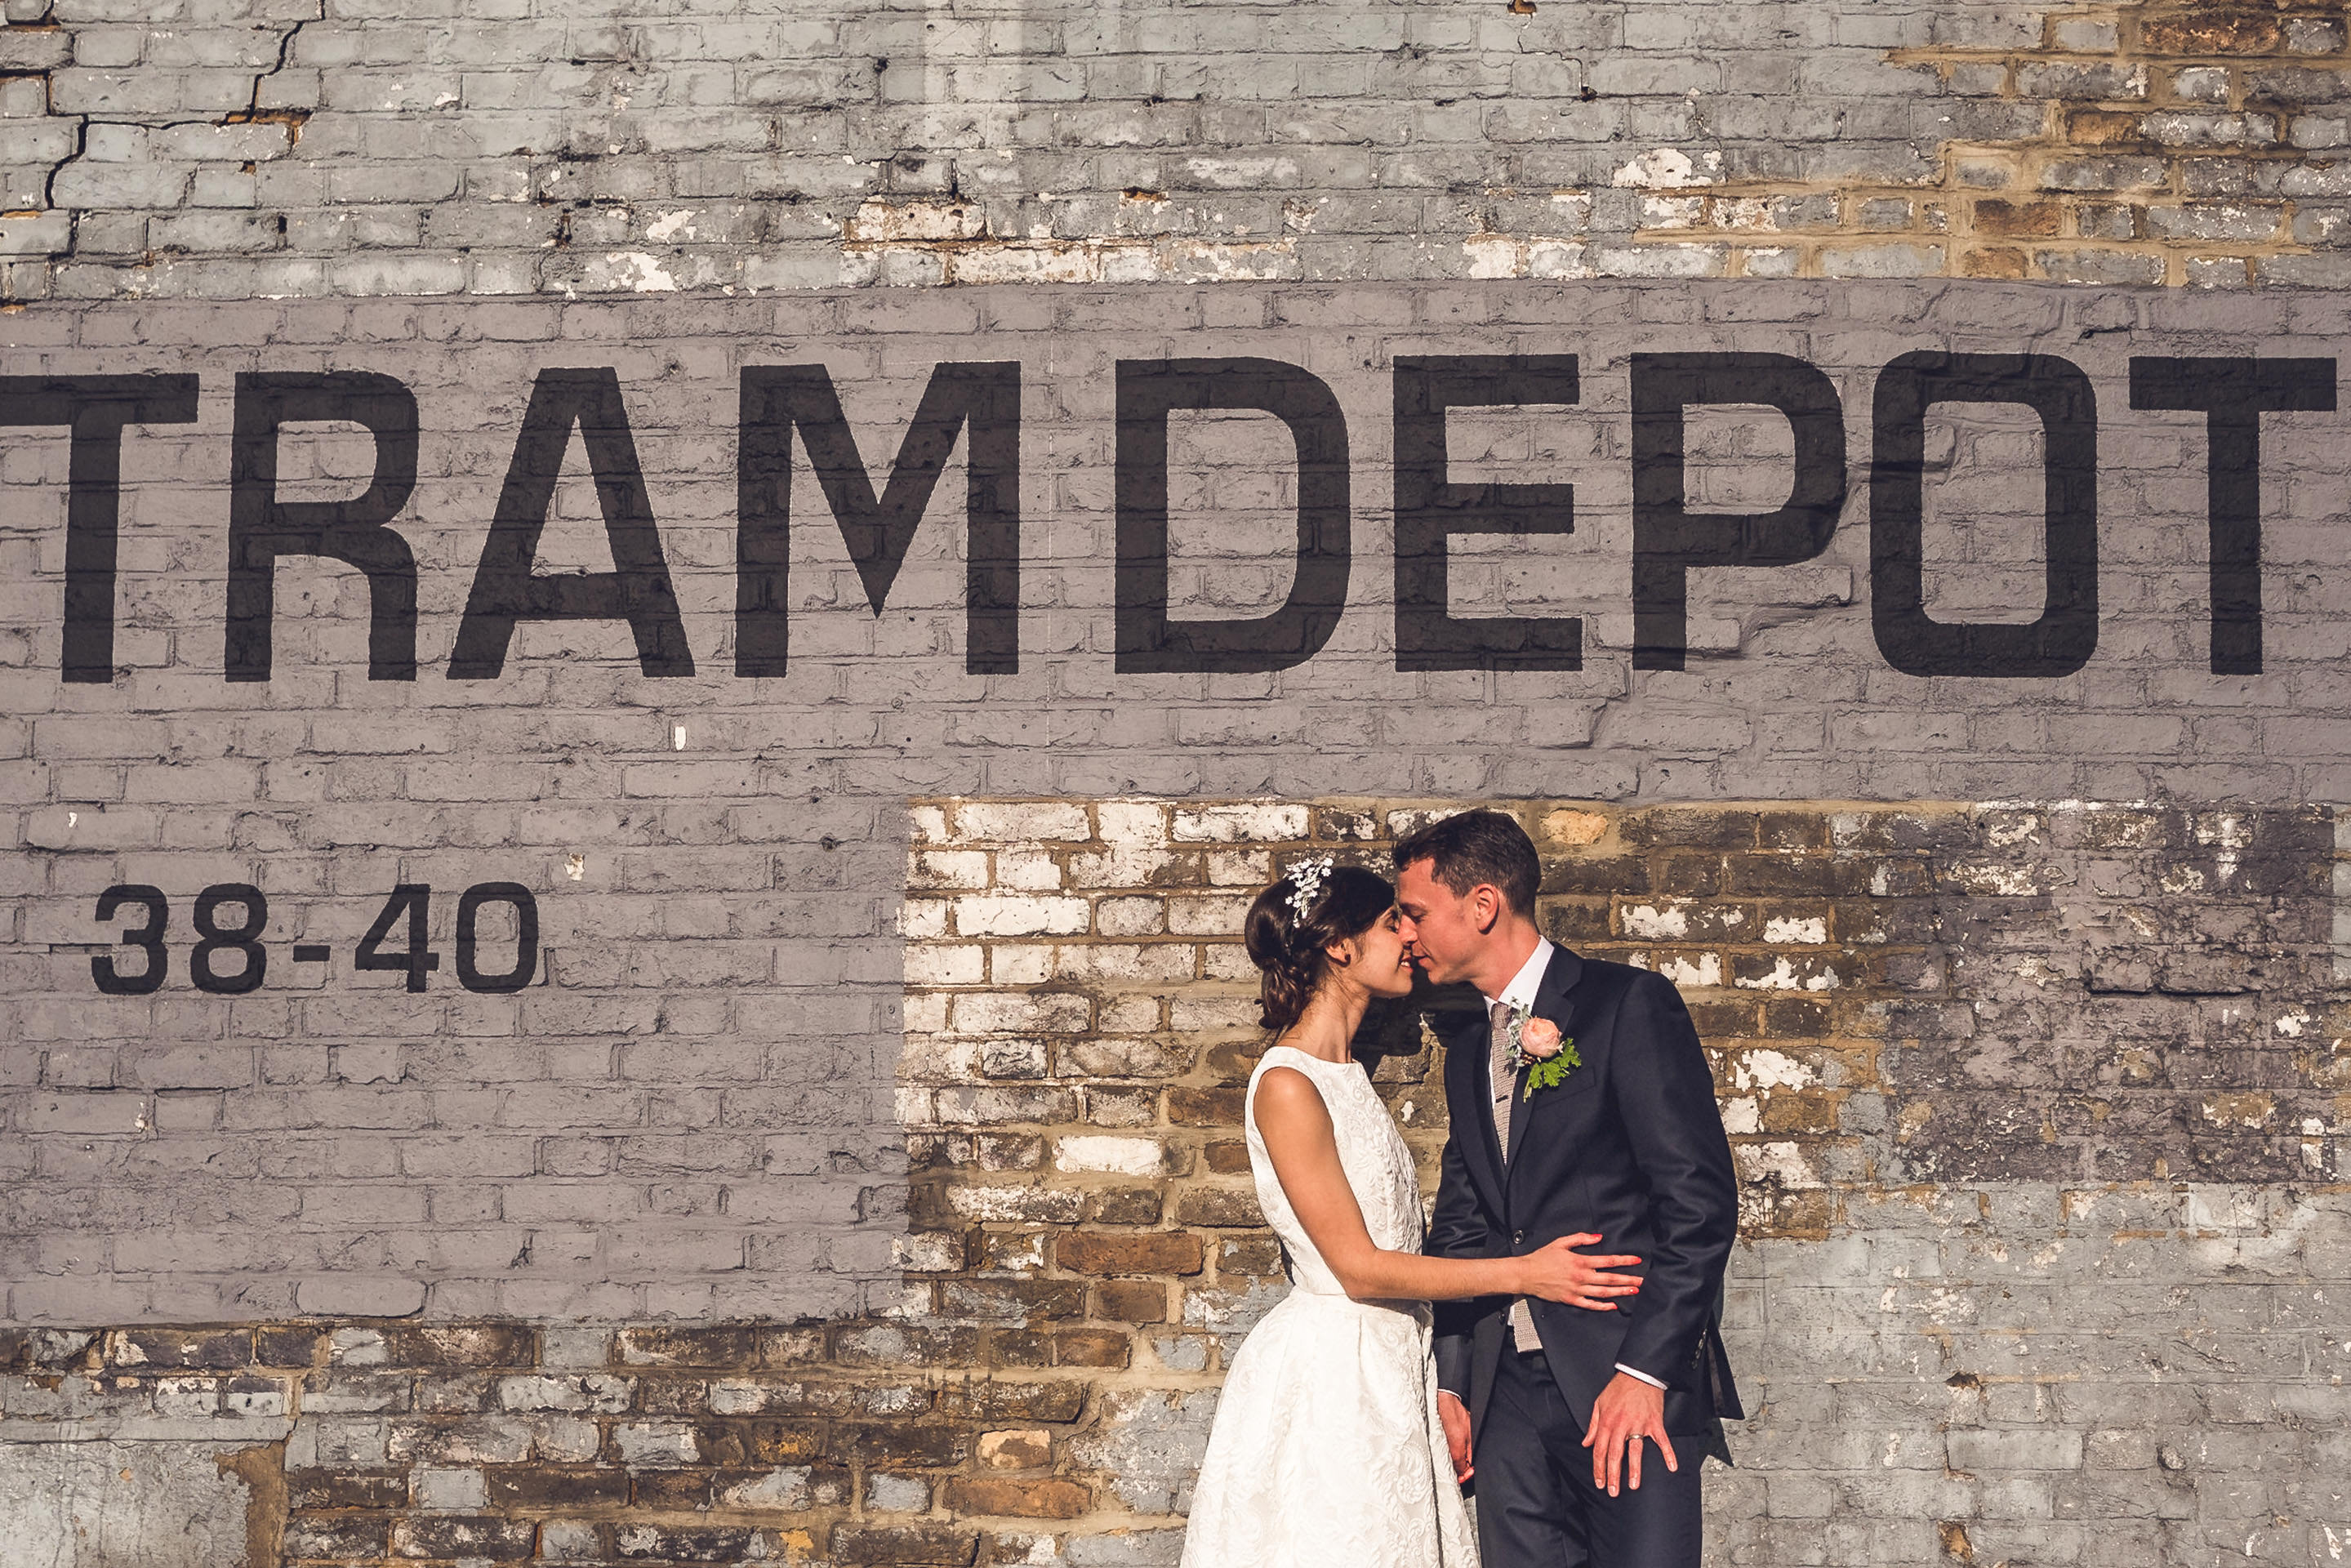 Urban portrait of hip bride and groom in front of clapton tram depot